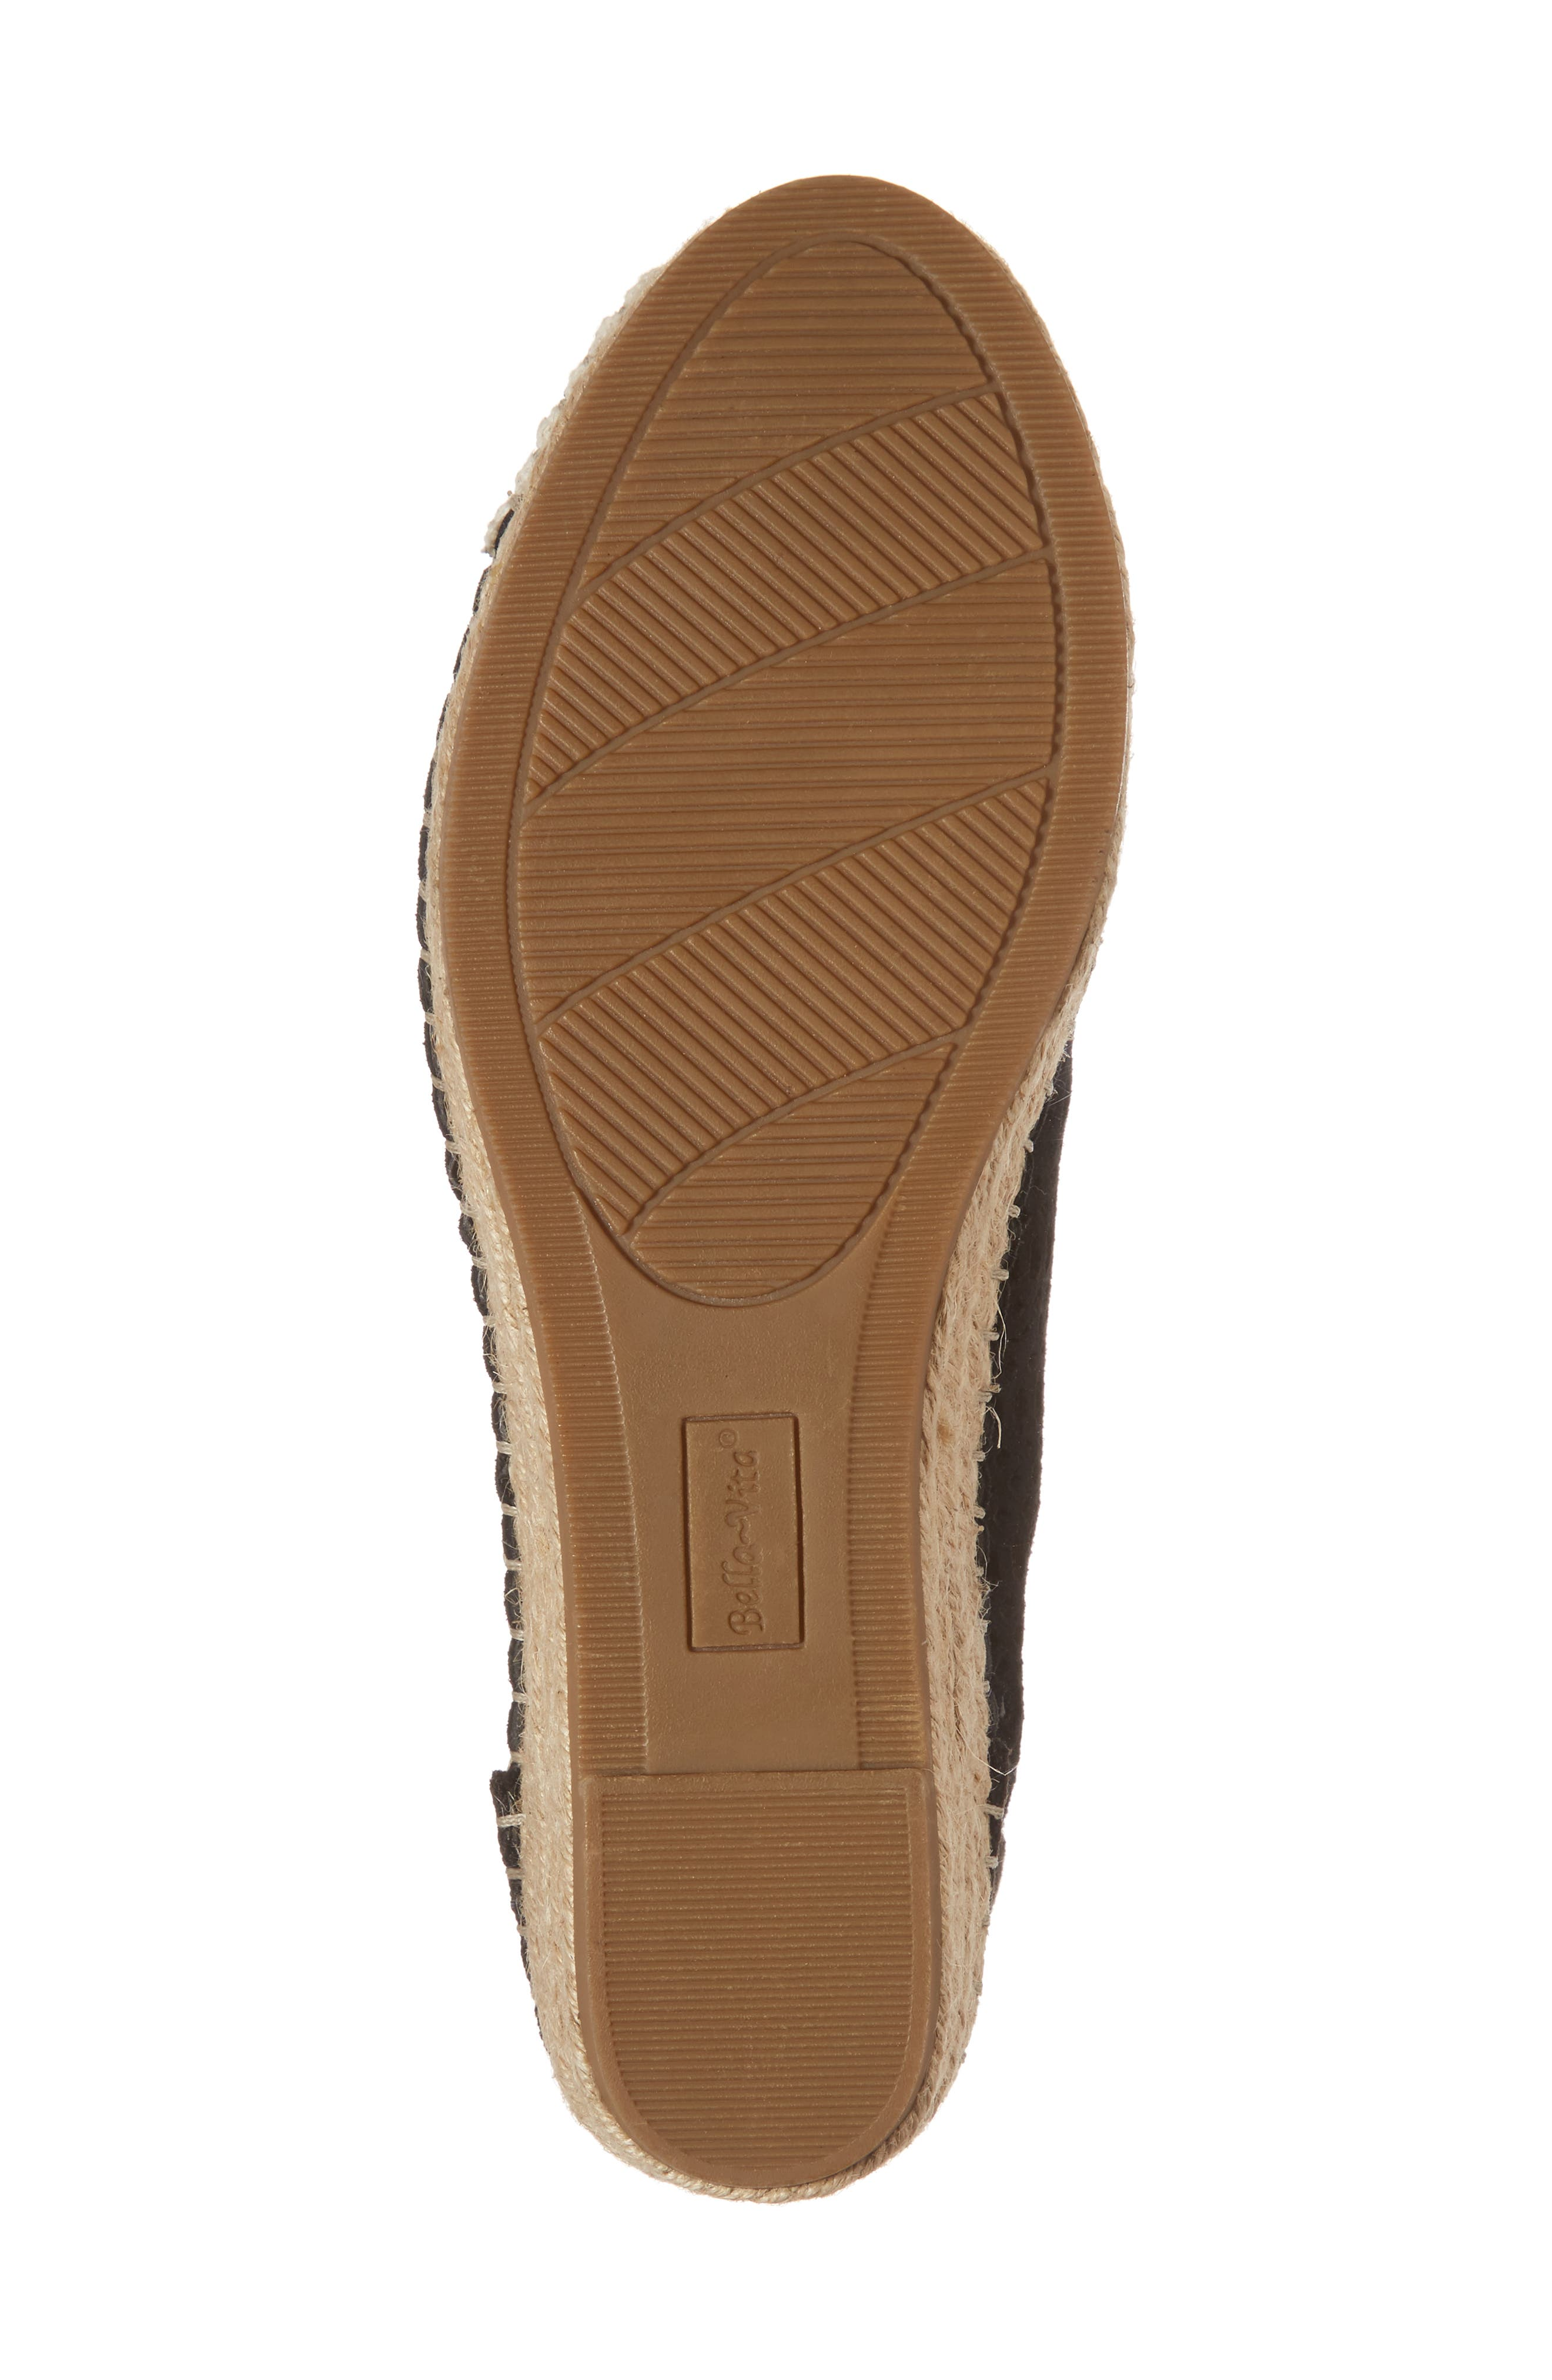 Clementine Espadrille Sneaker,                             Alternate thumbnail 6, color,                             018